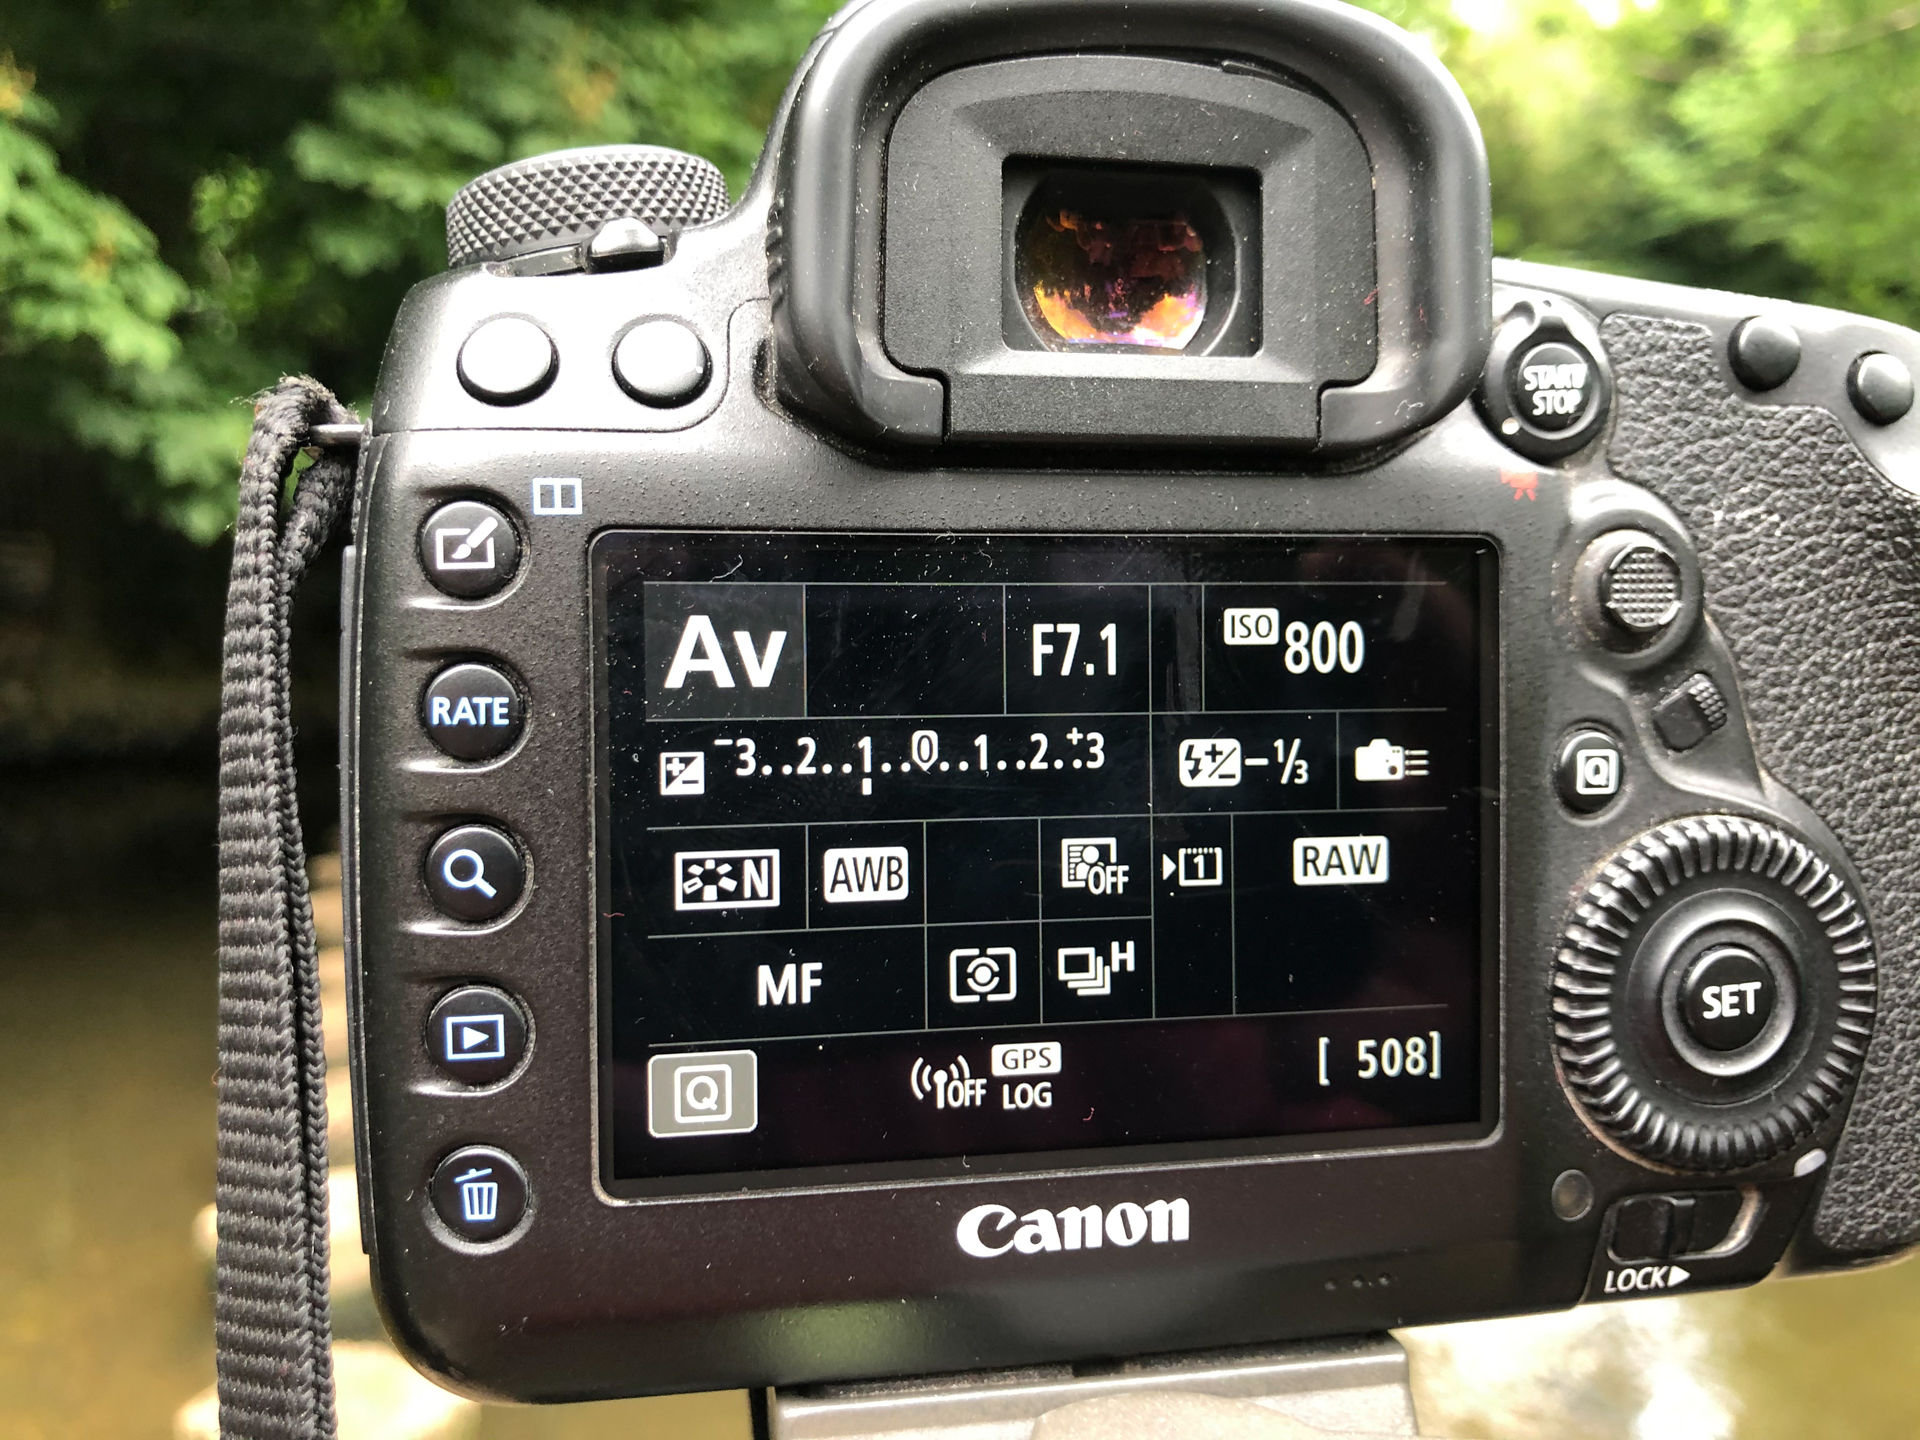 View of an LCD screen on a DSLR showing camera settings